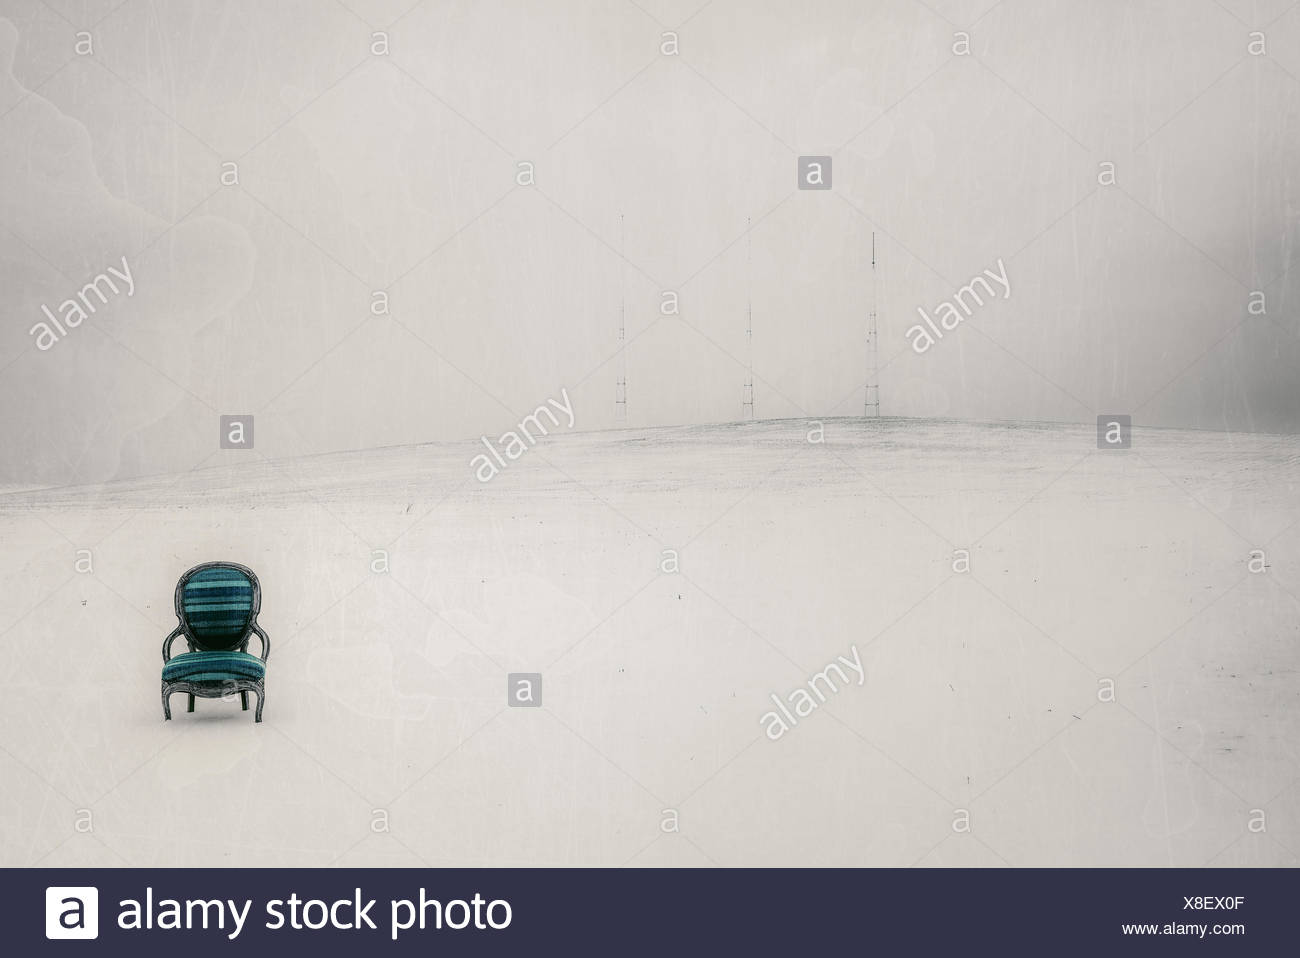 USA, Iowa, Cedar Rapids, Blue and green chair in white landscape - Stock Image